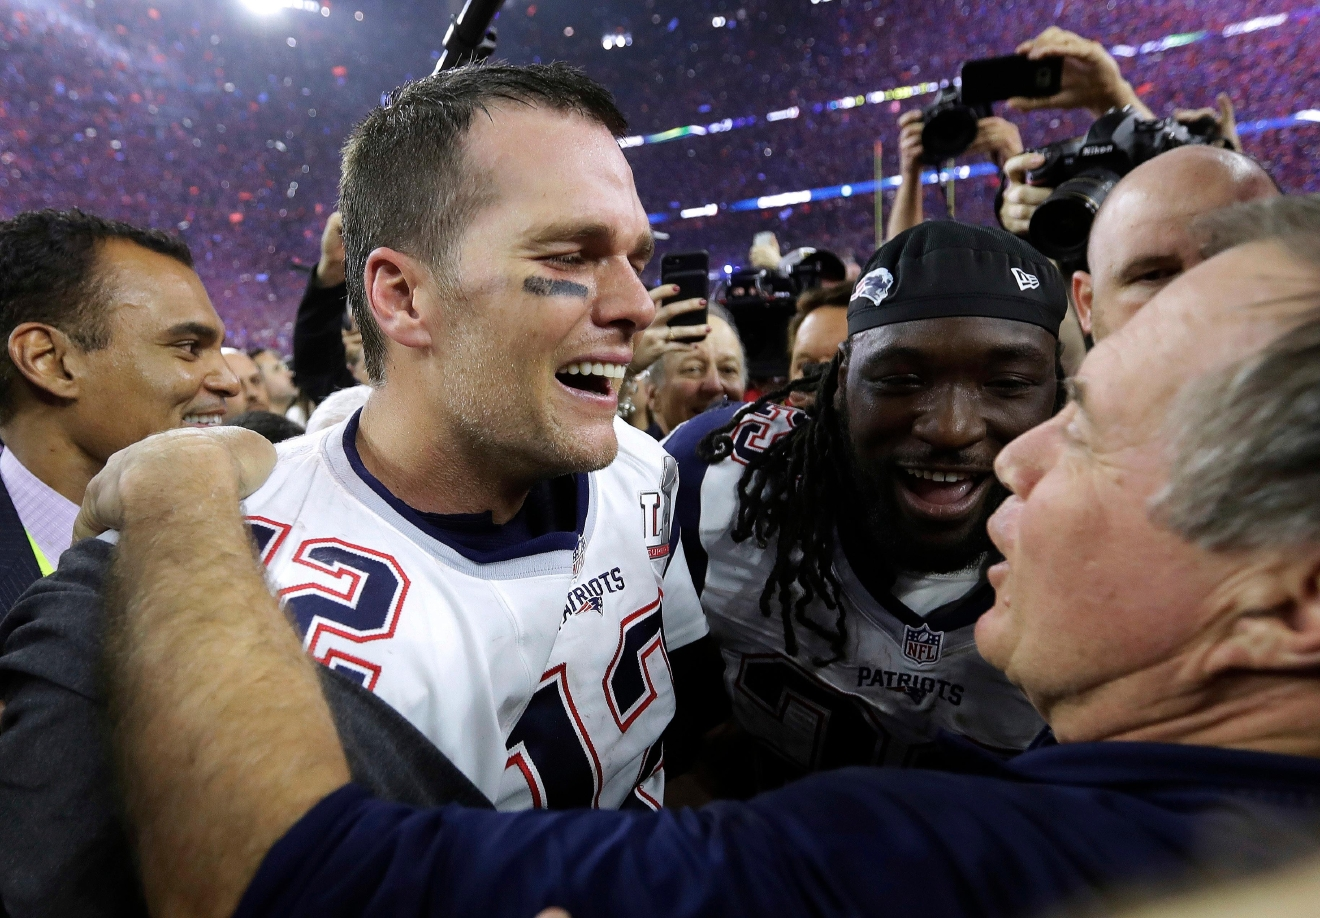 FILE - In this Feb. 5, 2017, file photo, New England Patriots' Tom Brady celebrates with coach Bill Belichick after the Patriots defeated the Atlanta Falcons 34-28 in overtime in the NFL Super Bowl 51 football game in Houston. A new book and a movie are in the works about Brady and the suspension he overcame to earn an unprecedented fifth Super Bowl ring. (AP Photo/David J. Phillip, File)